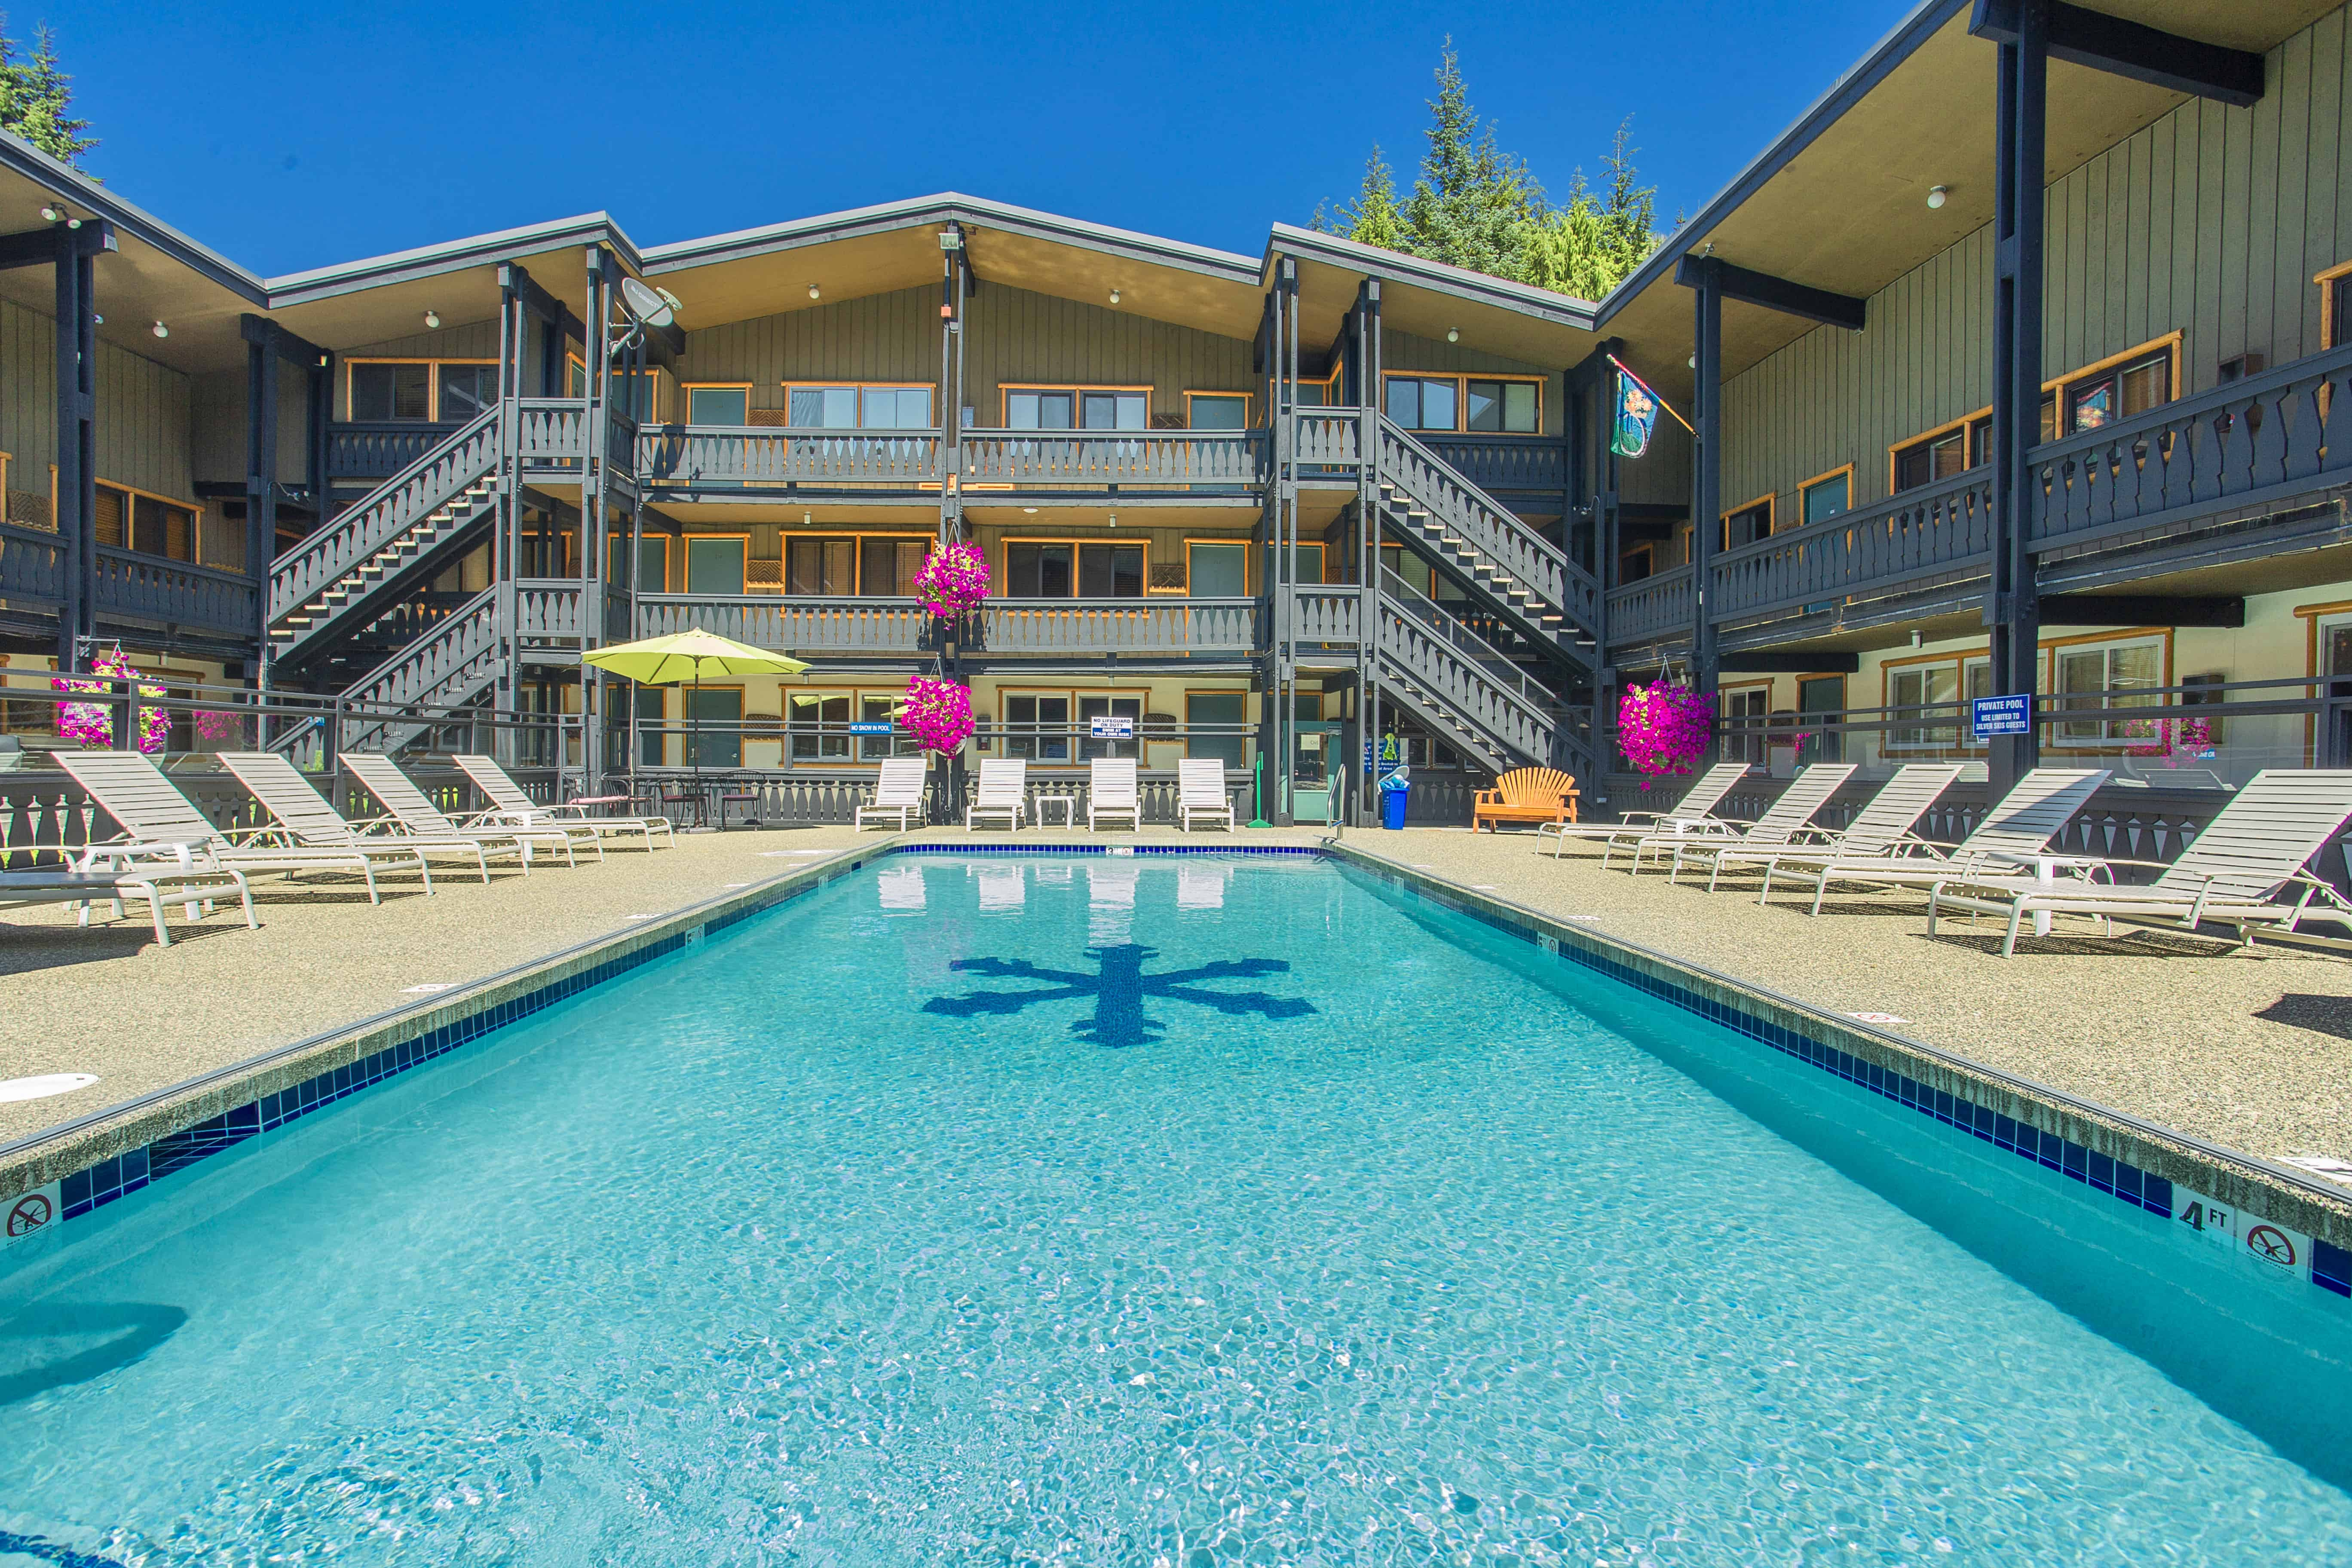 Silver Skis Chalet Outdoor Pool